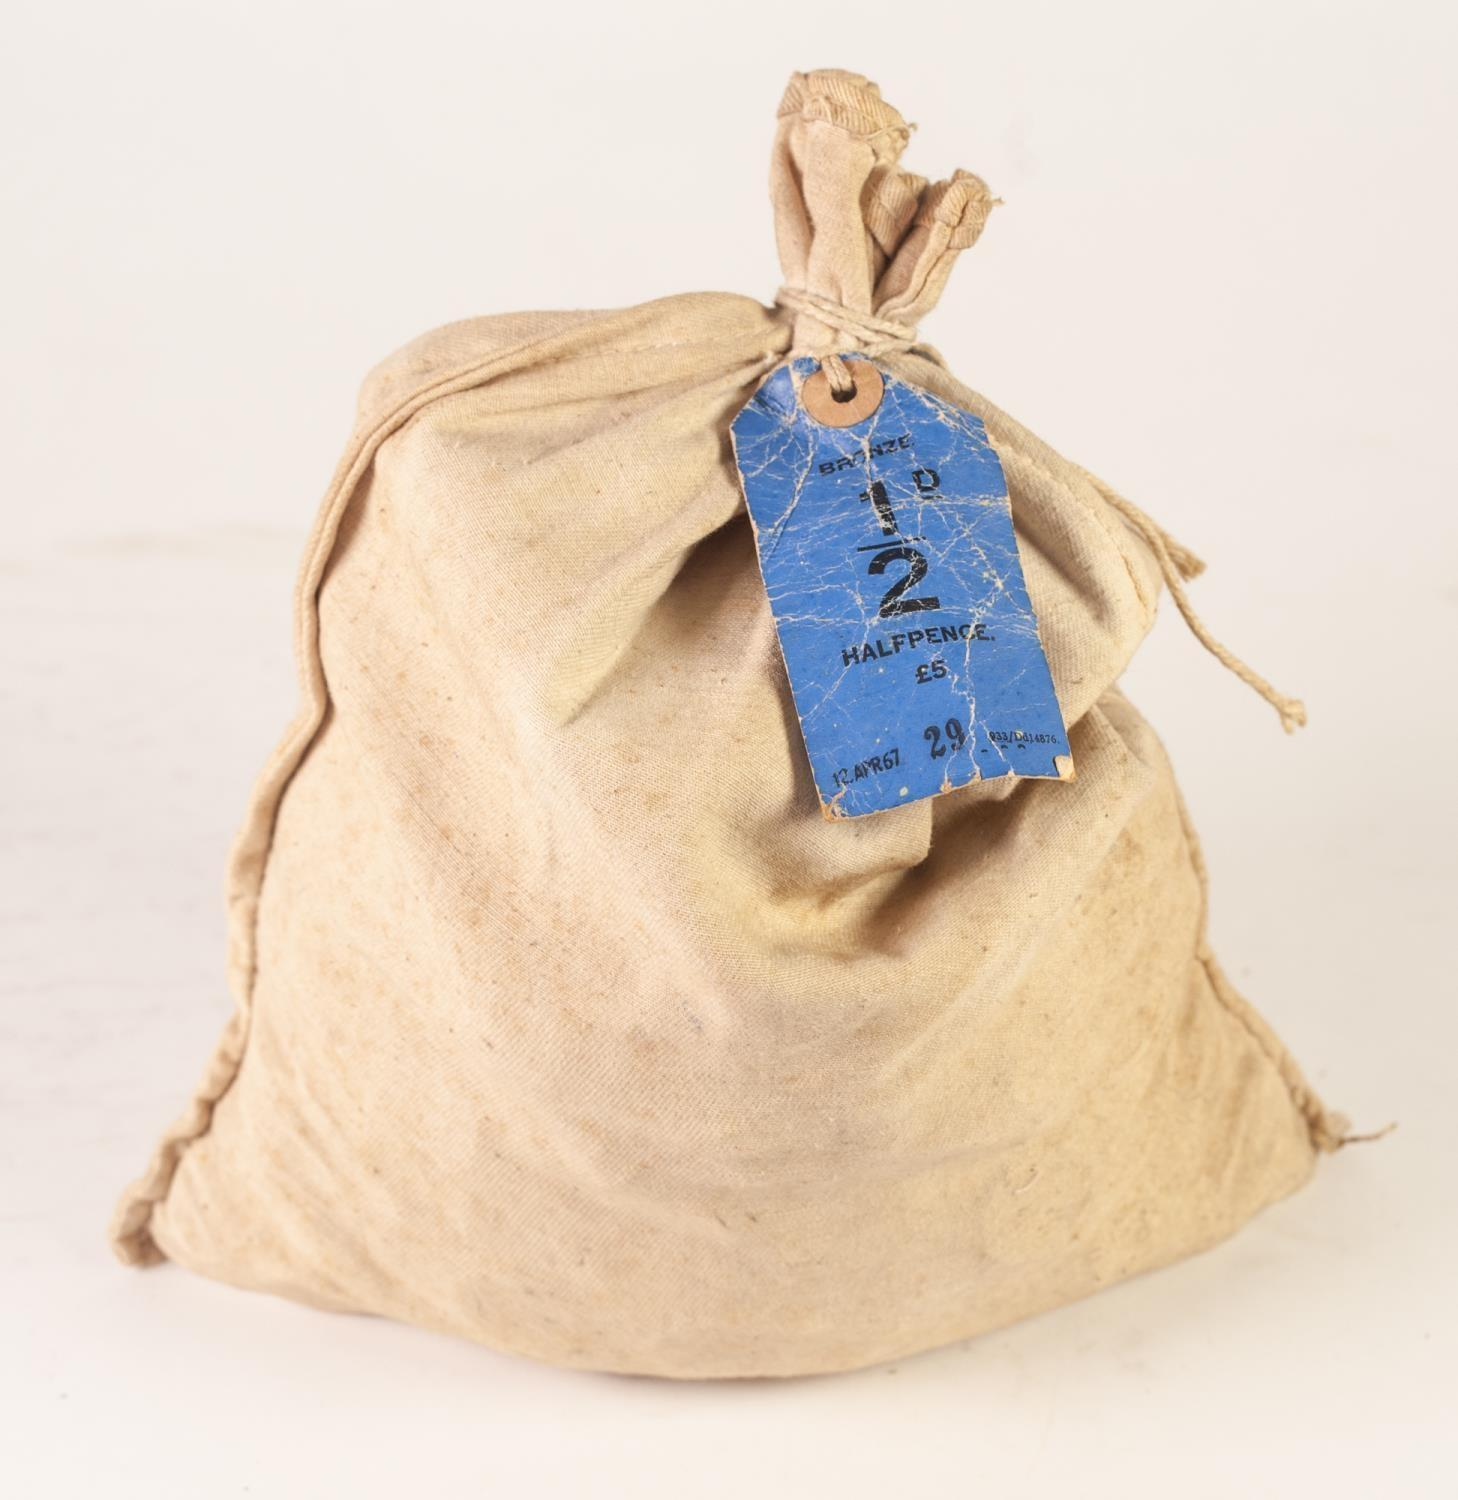 Lot 3 - CREAM CLOTH BANK BAG CONTAIING FIVE POUNDS WORTH OF UNCIRCULATED 1967 HALF PENNY COINS, tied with